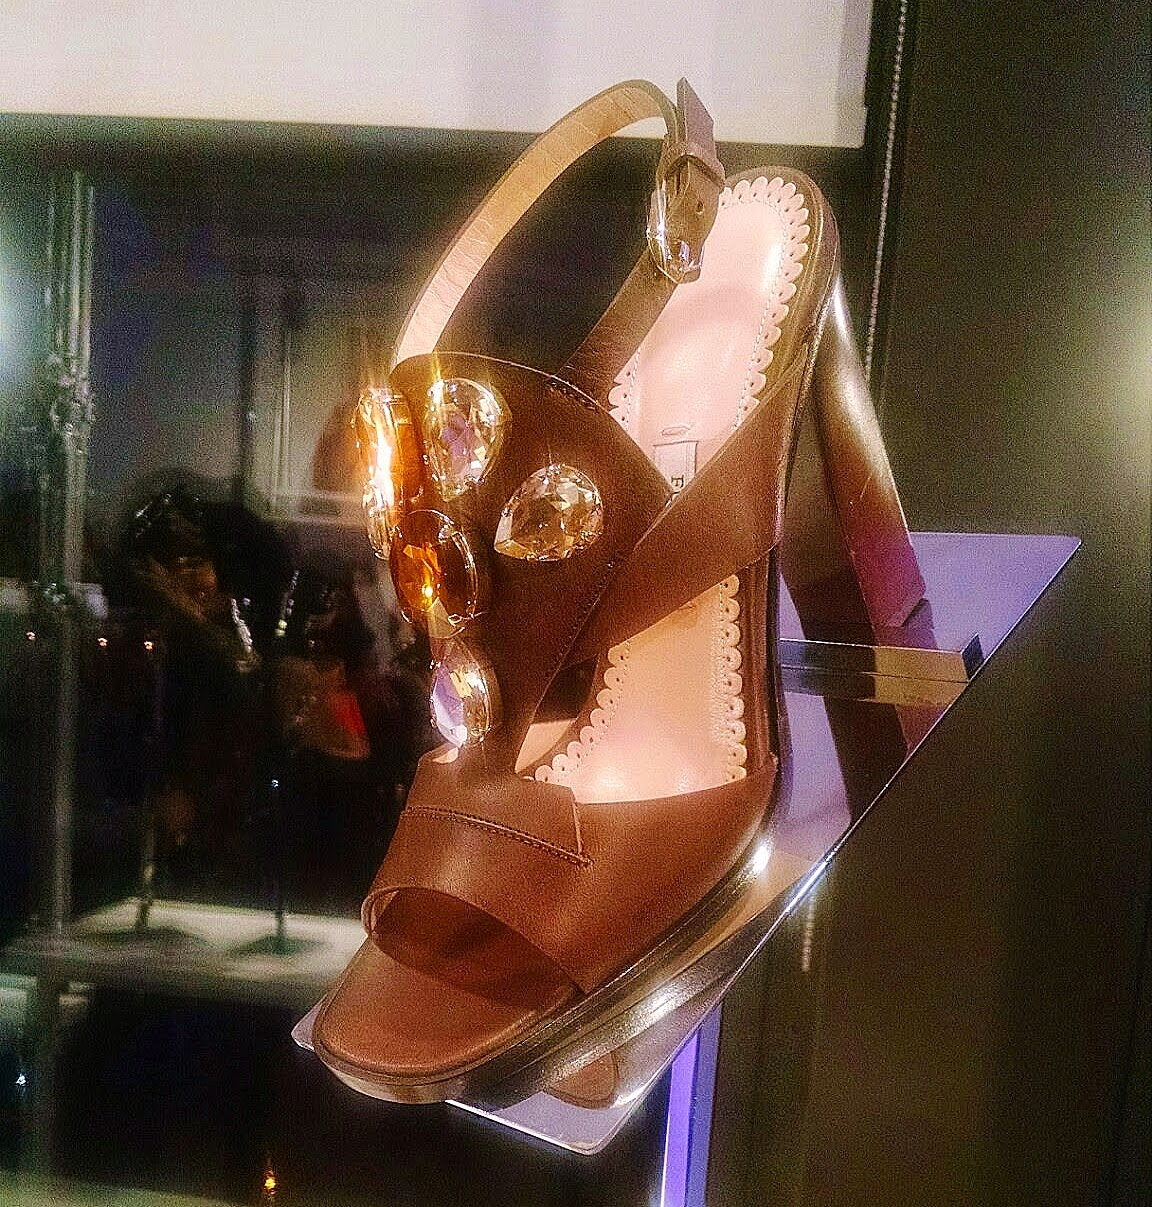 Furla jeweled sandal